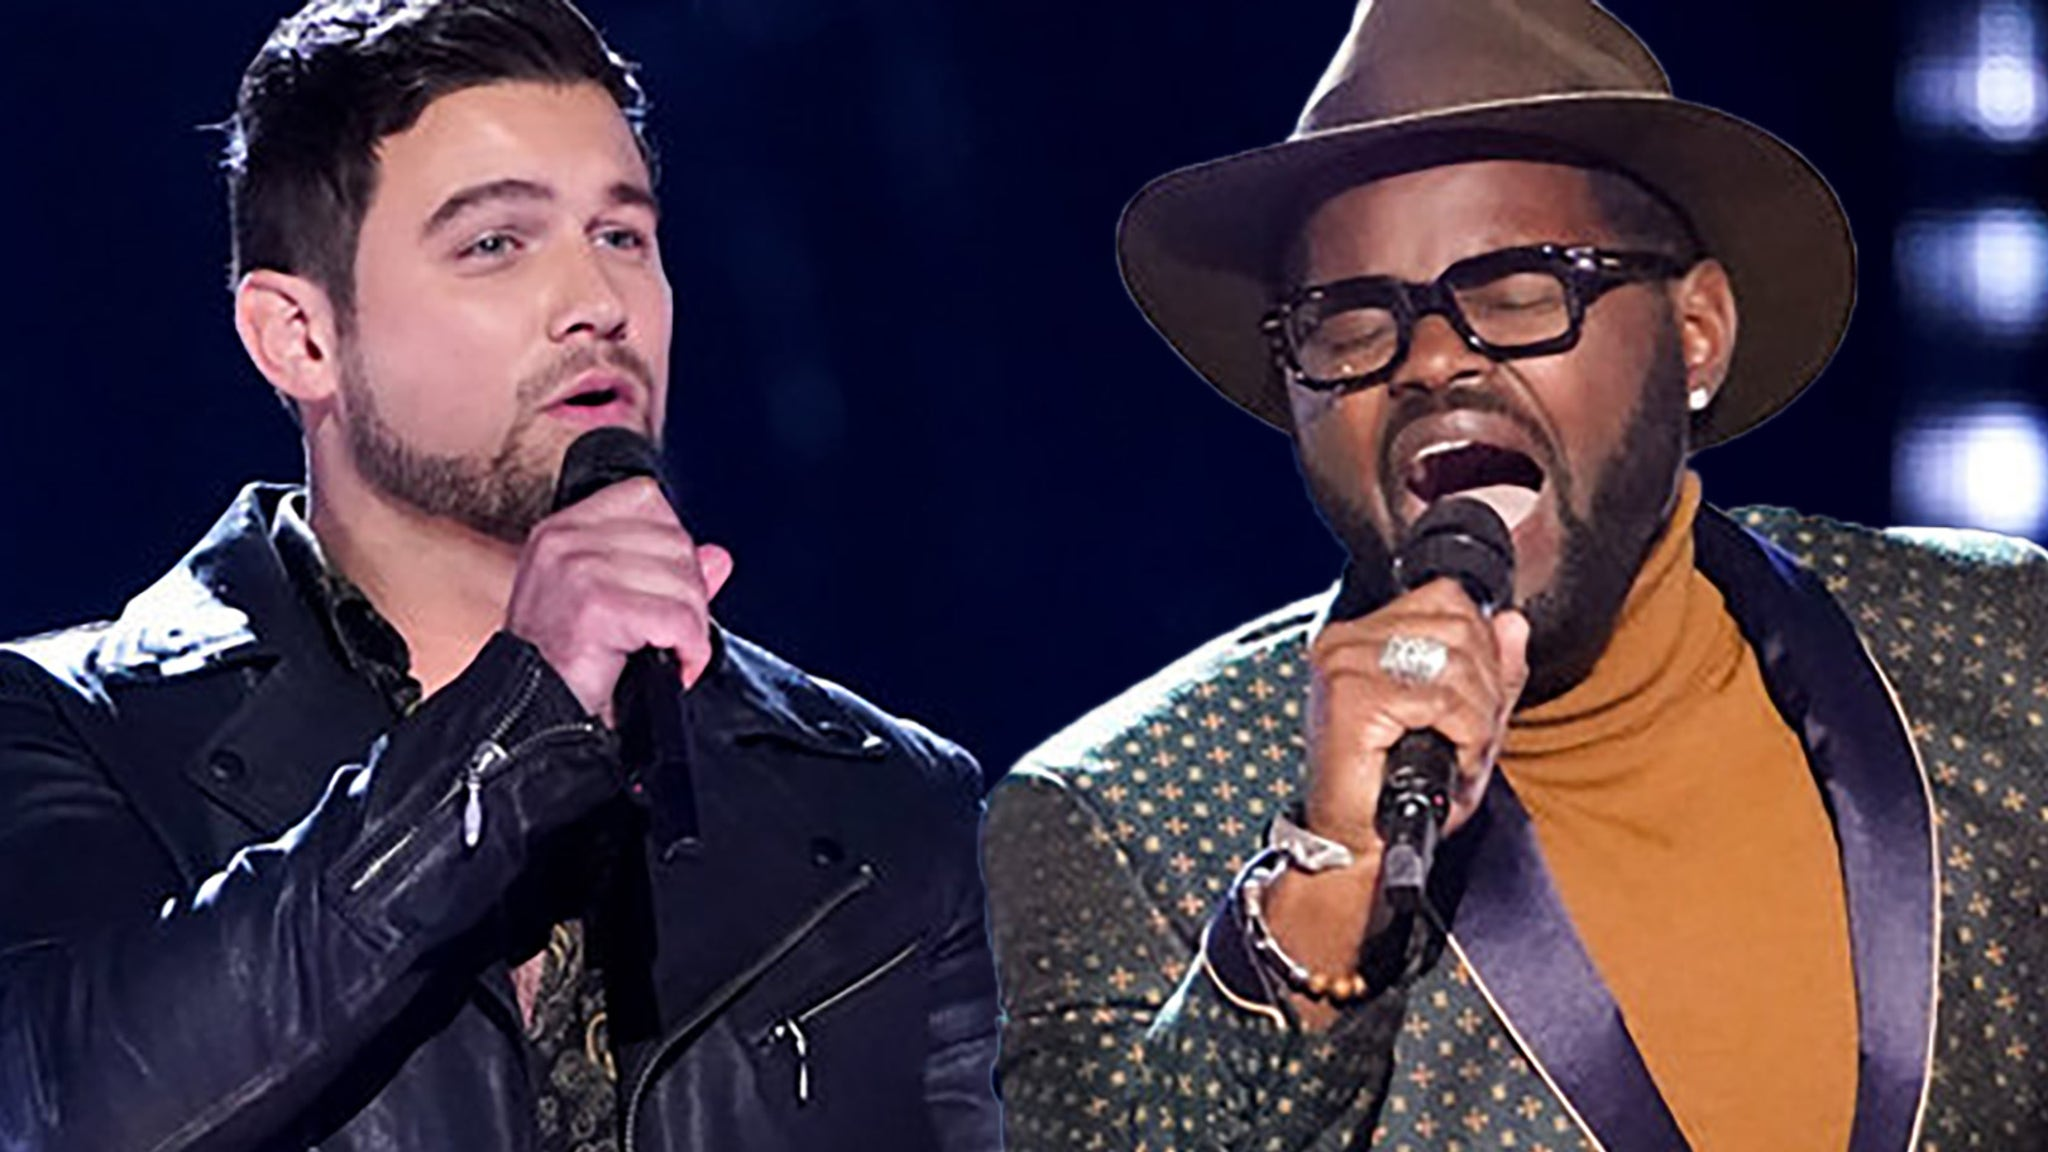 The Voice Knockouts Conclude with Two of the Biggest Voices in the History of the Show